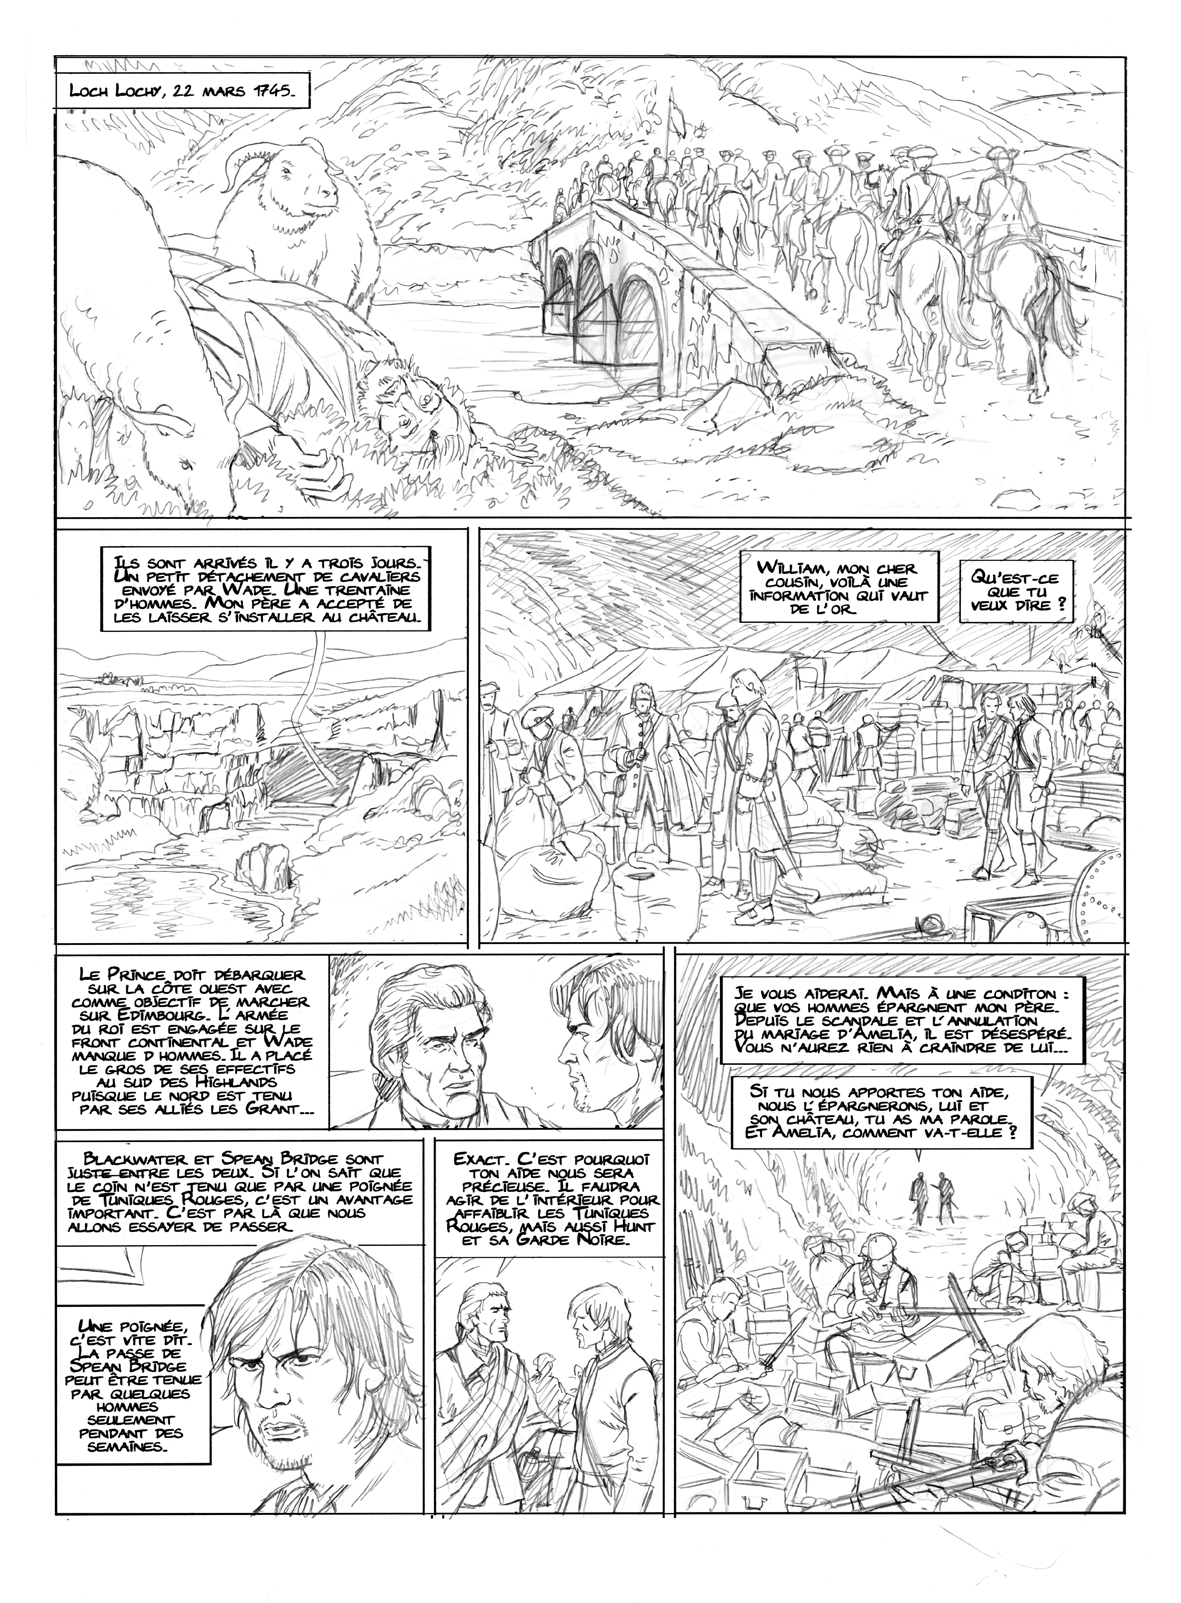 Highlands, planche 2 du tome 2, crayonné © Philippe Aymond